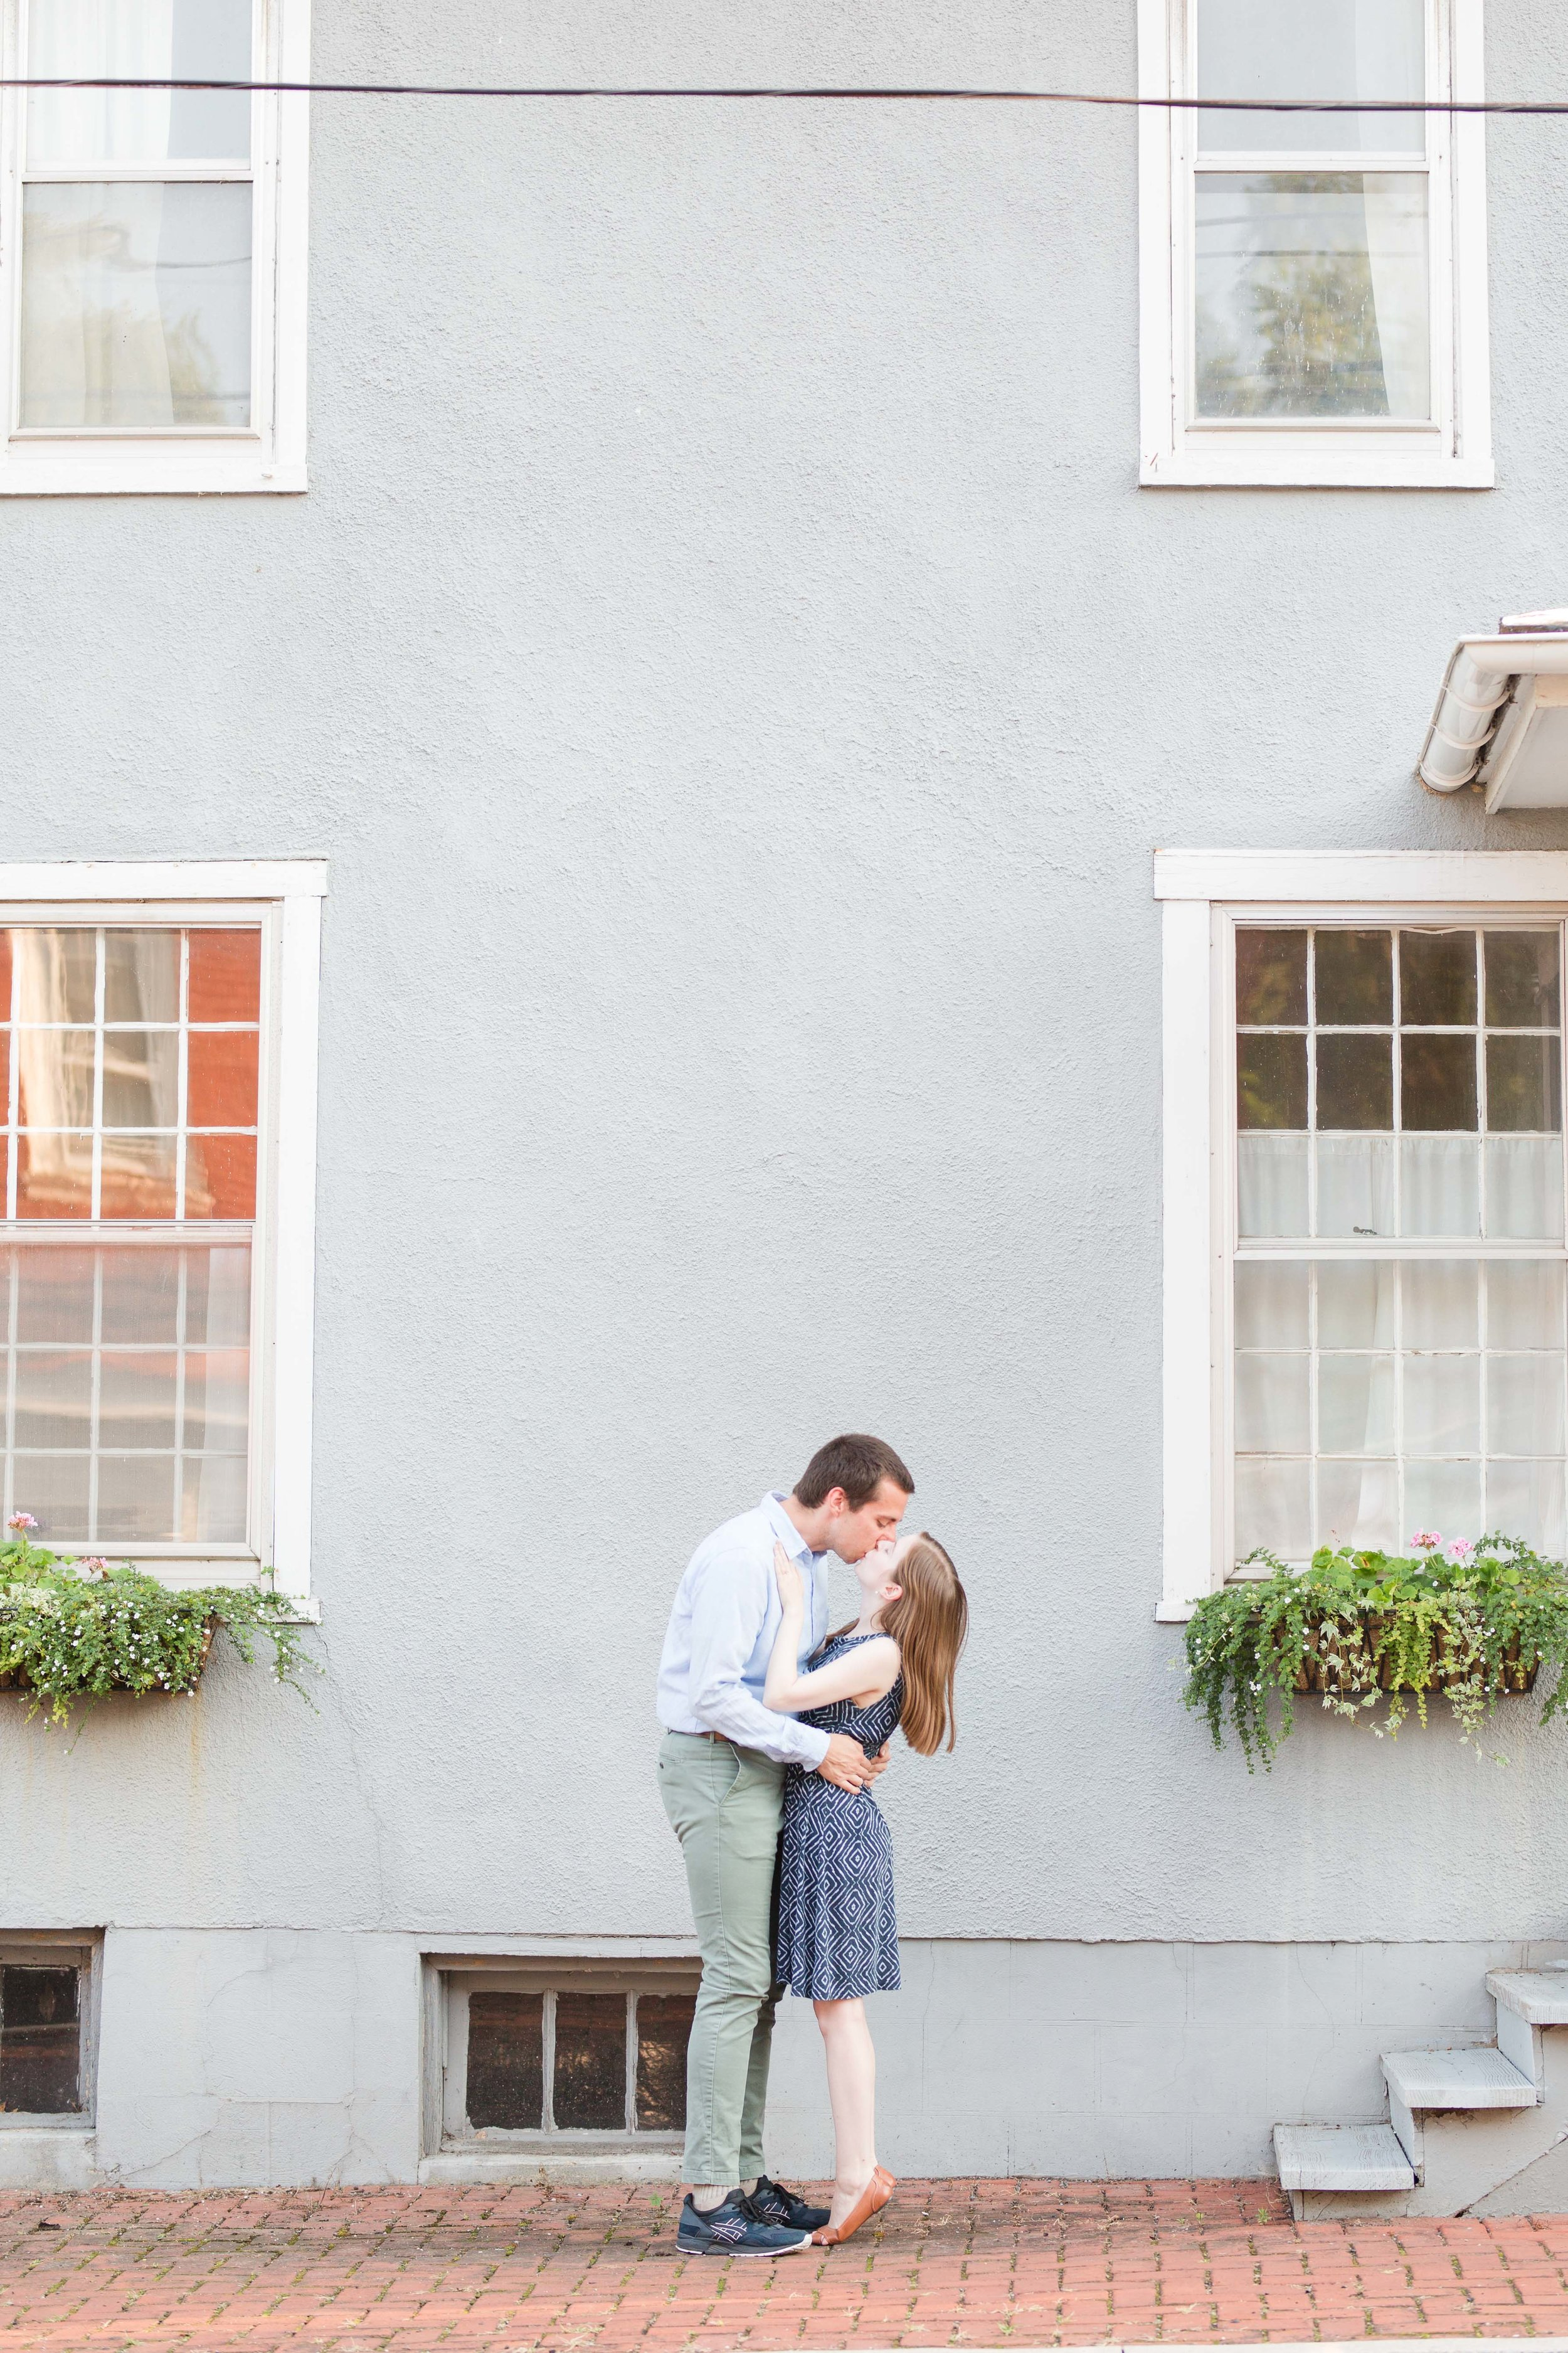 shepherdstown, wv engagement pictures